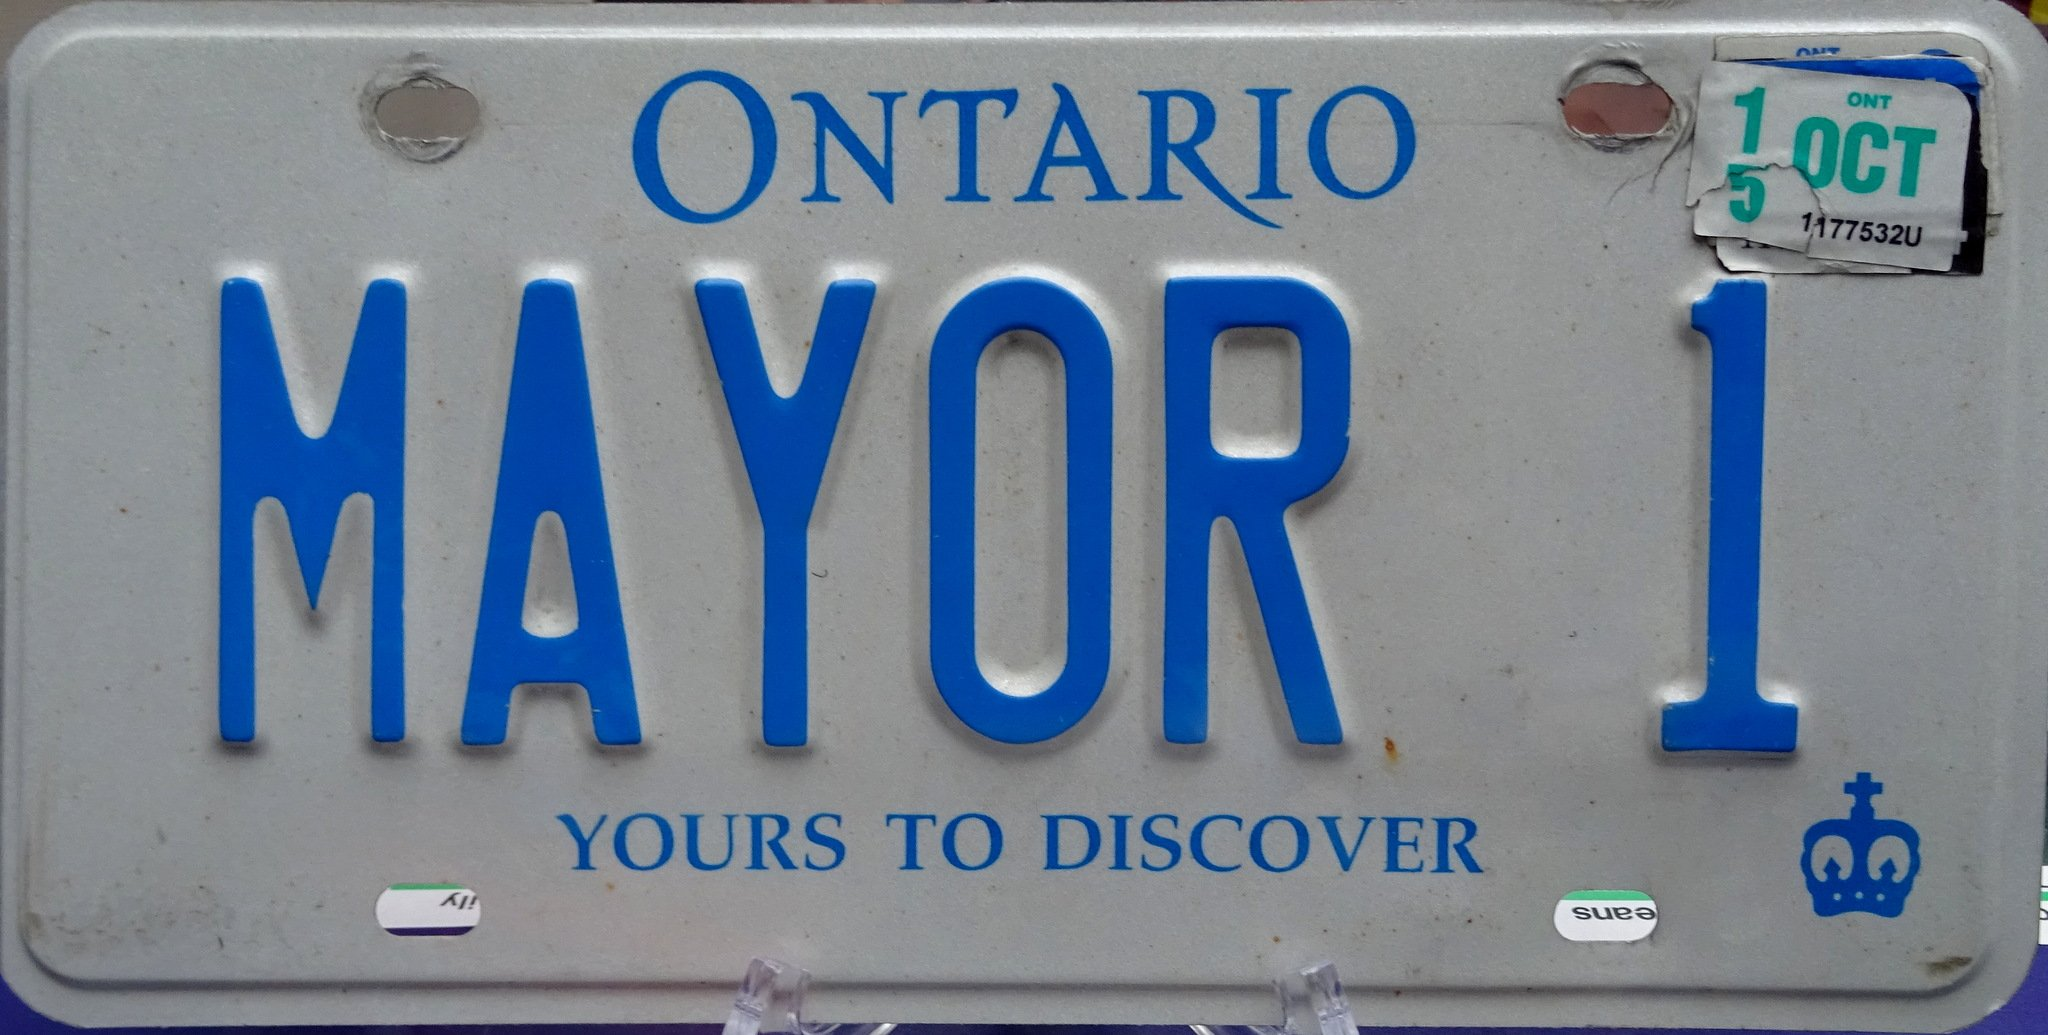 MAYOR 1 - Former Mississauga mayor Hazel McCallion's Car Licence Plate expired Oct. 2015. Photo by I Lee, 12 April 2017 at